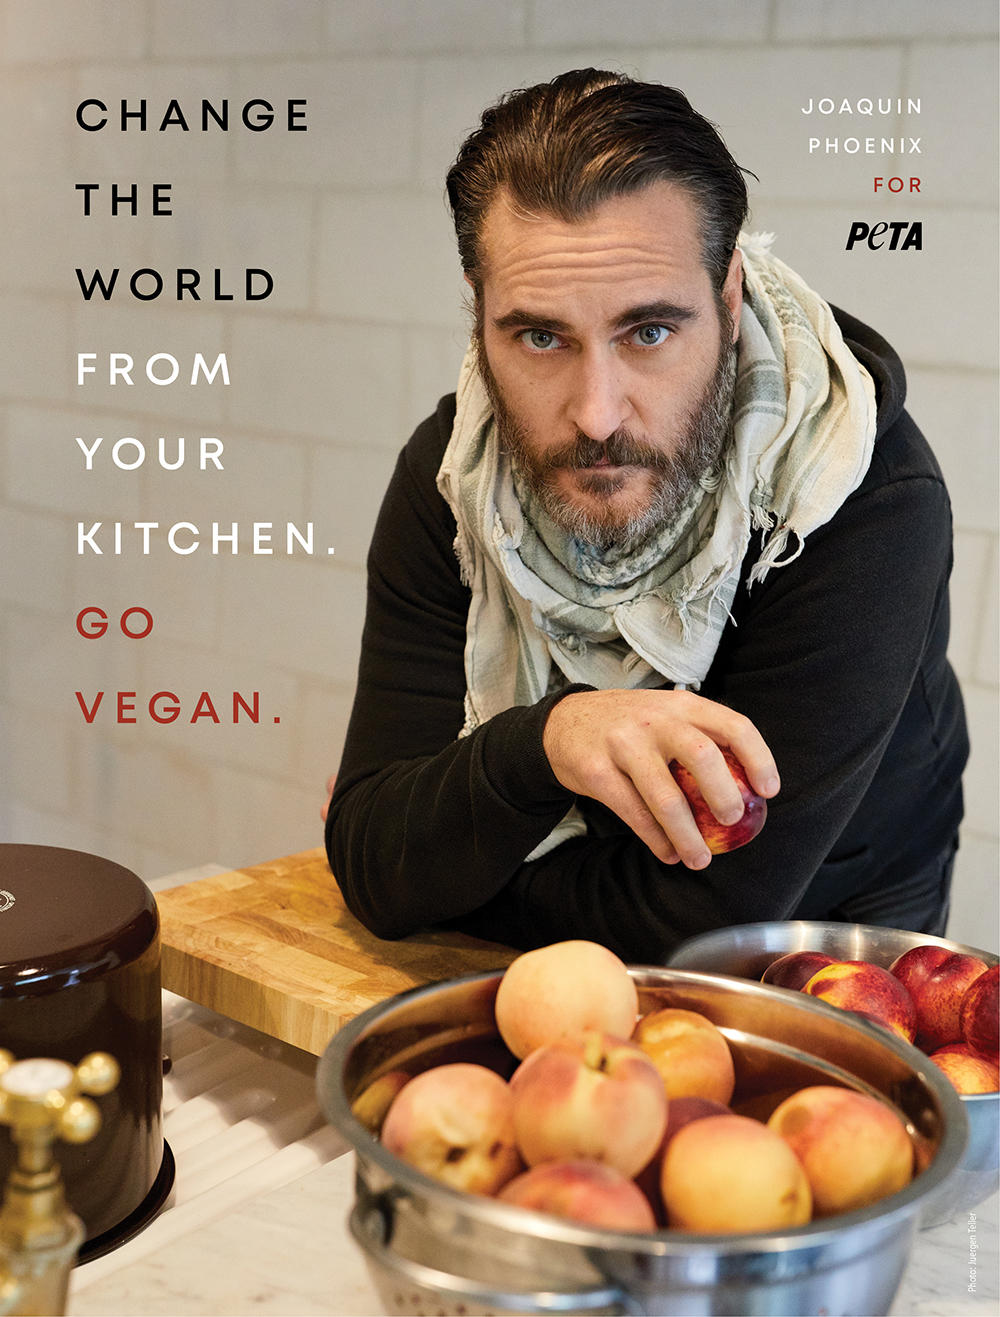 Joaquin Phoenix Wants You to Change the World From Your Kitchen